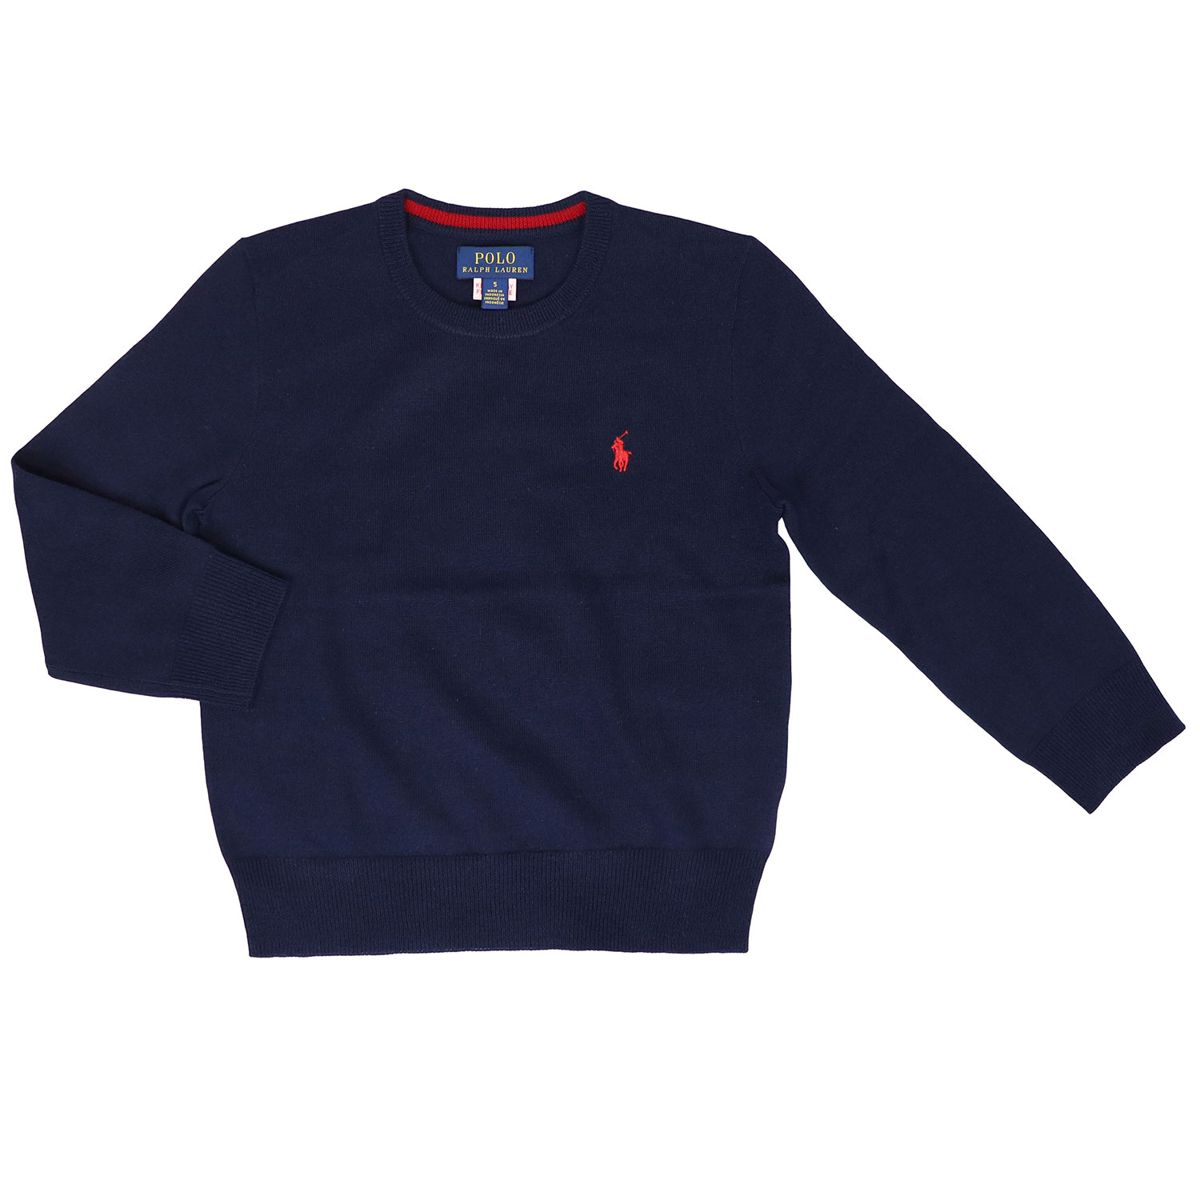 Crewneck cotton sweater with contrast logo Blue Polo Ralph Lauren